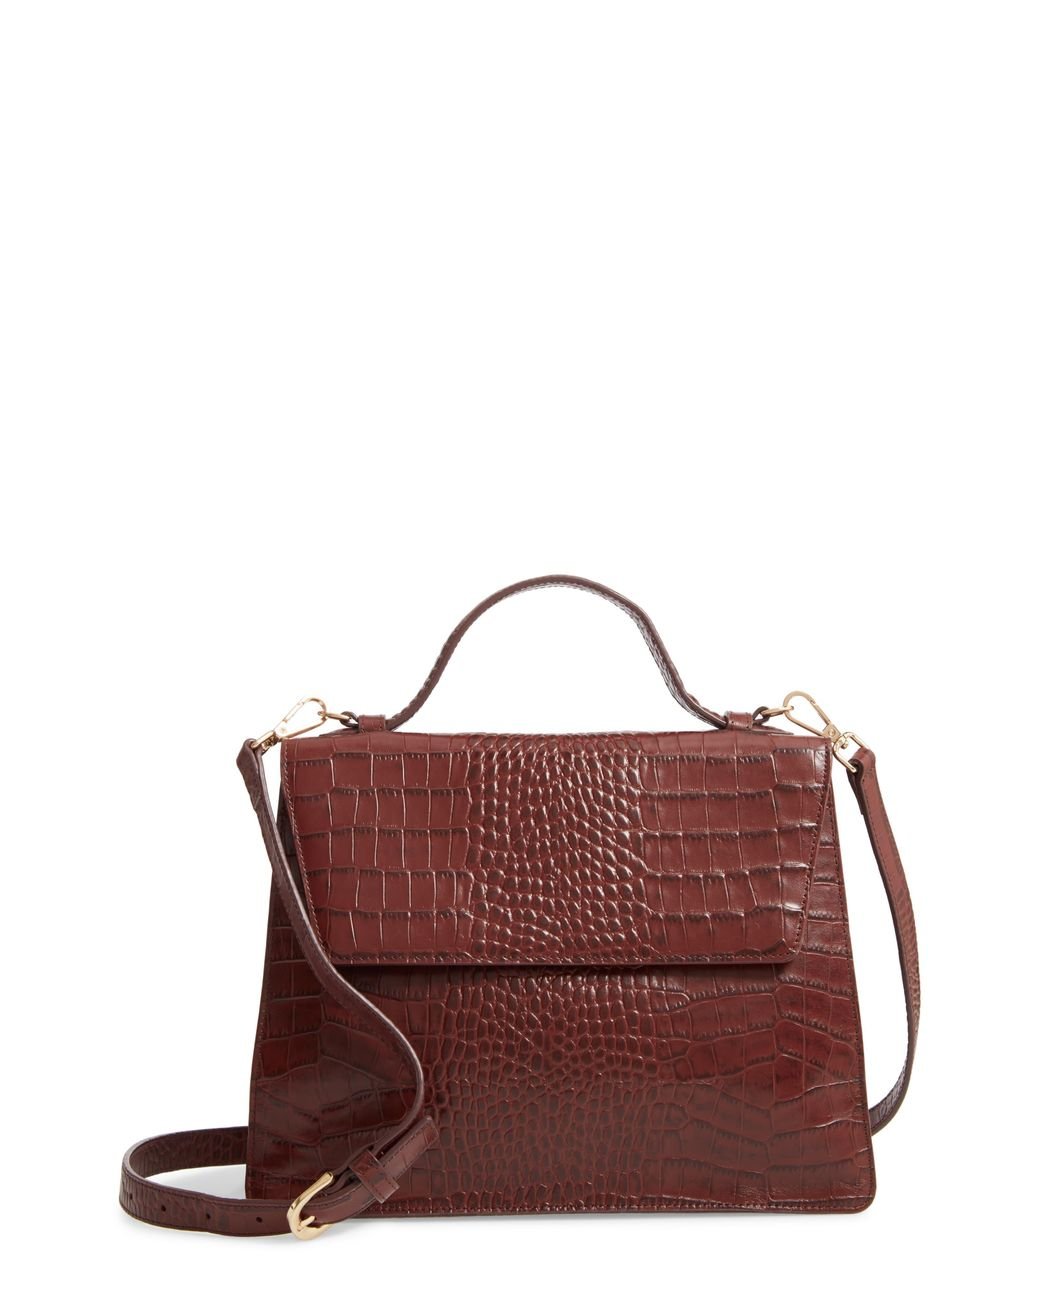 Ryder Croc Embossed Leather Top Handle Bag